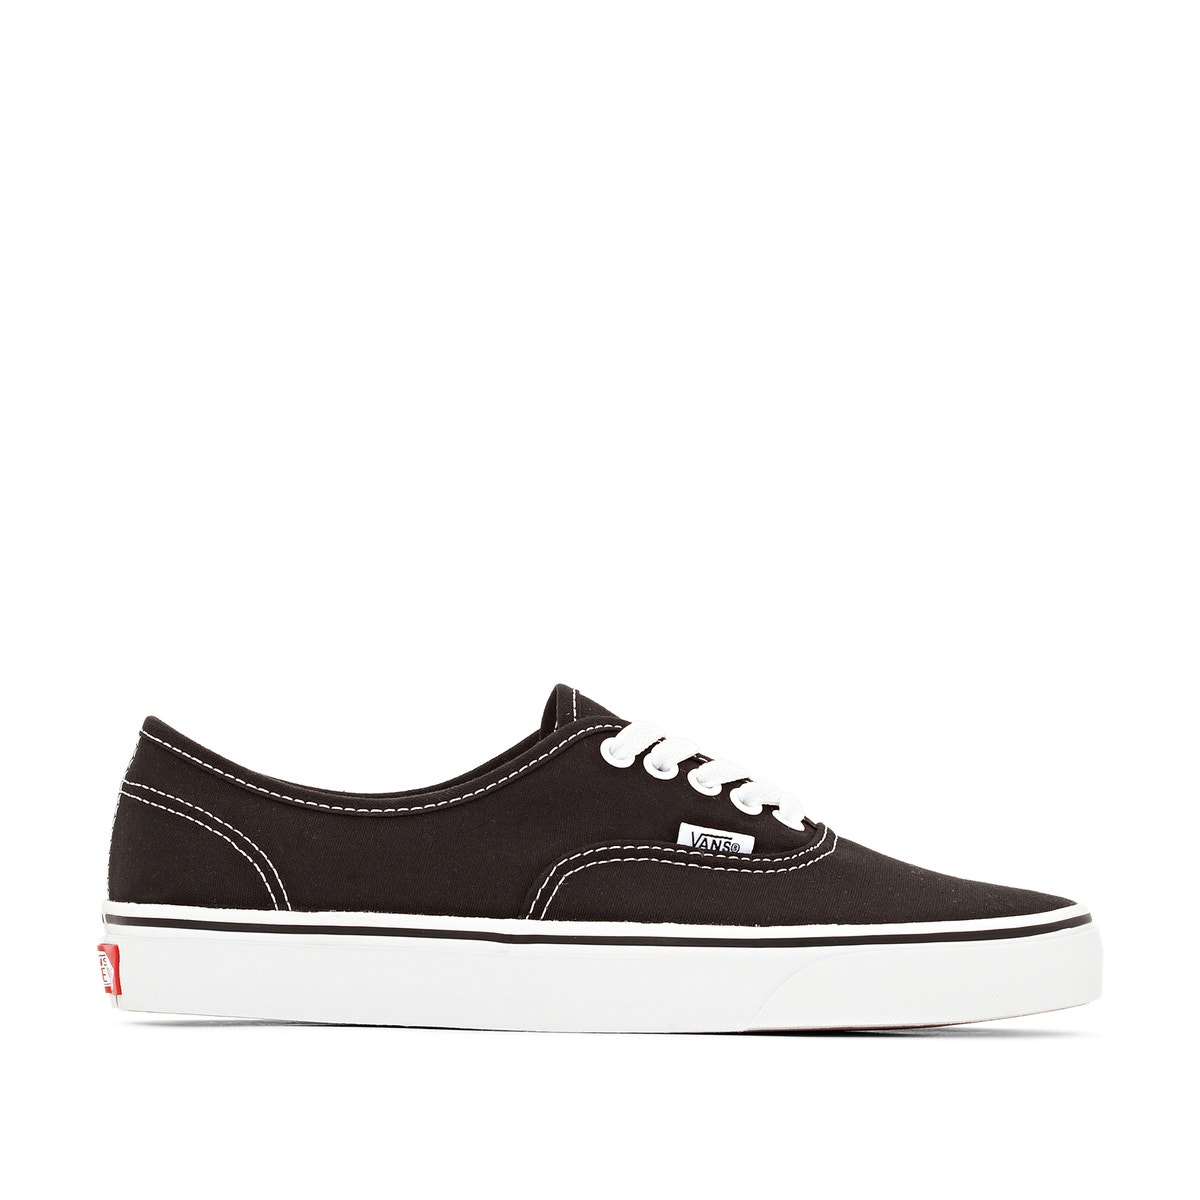 Vans - Vans Sneakers Baskets UA Authentic 350053535 - 6527